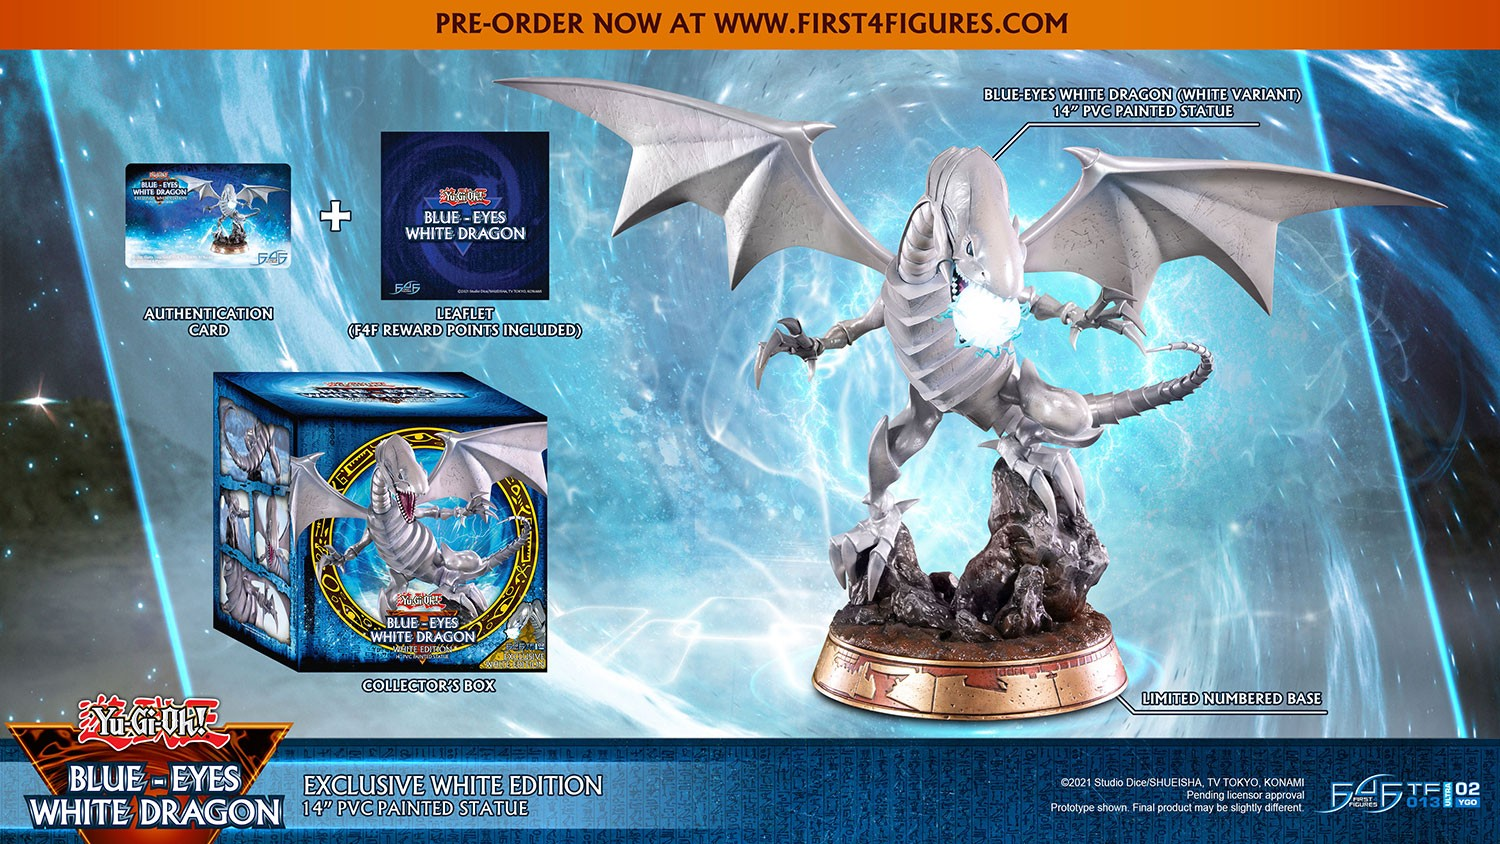 Yu-Gi-Oh! – Blue-Eyes White Dragon (Exclusive White Edition)